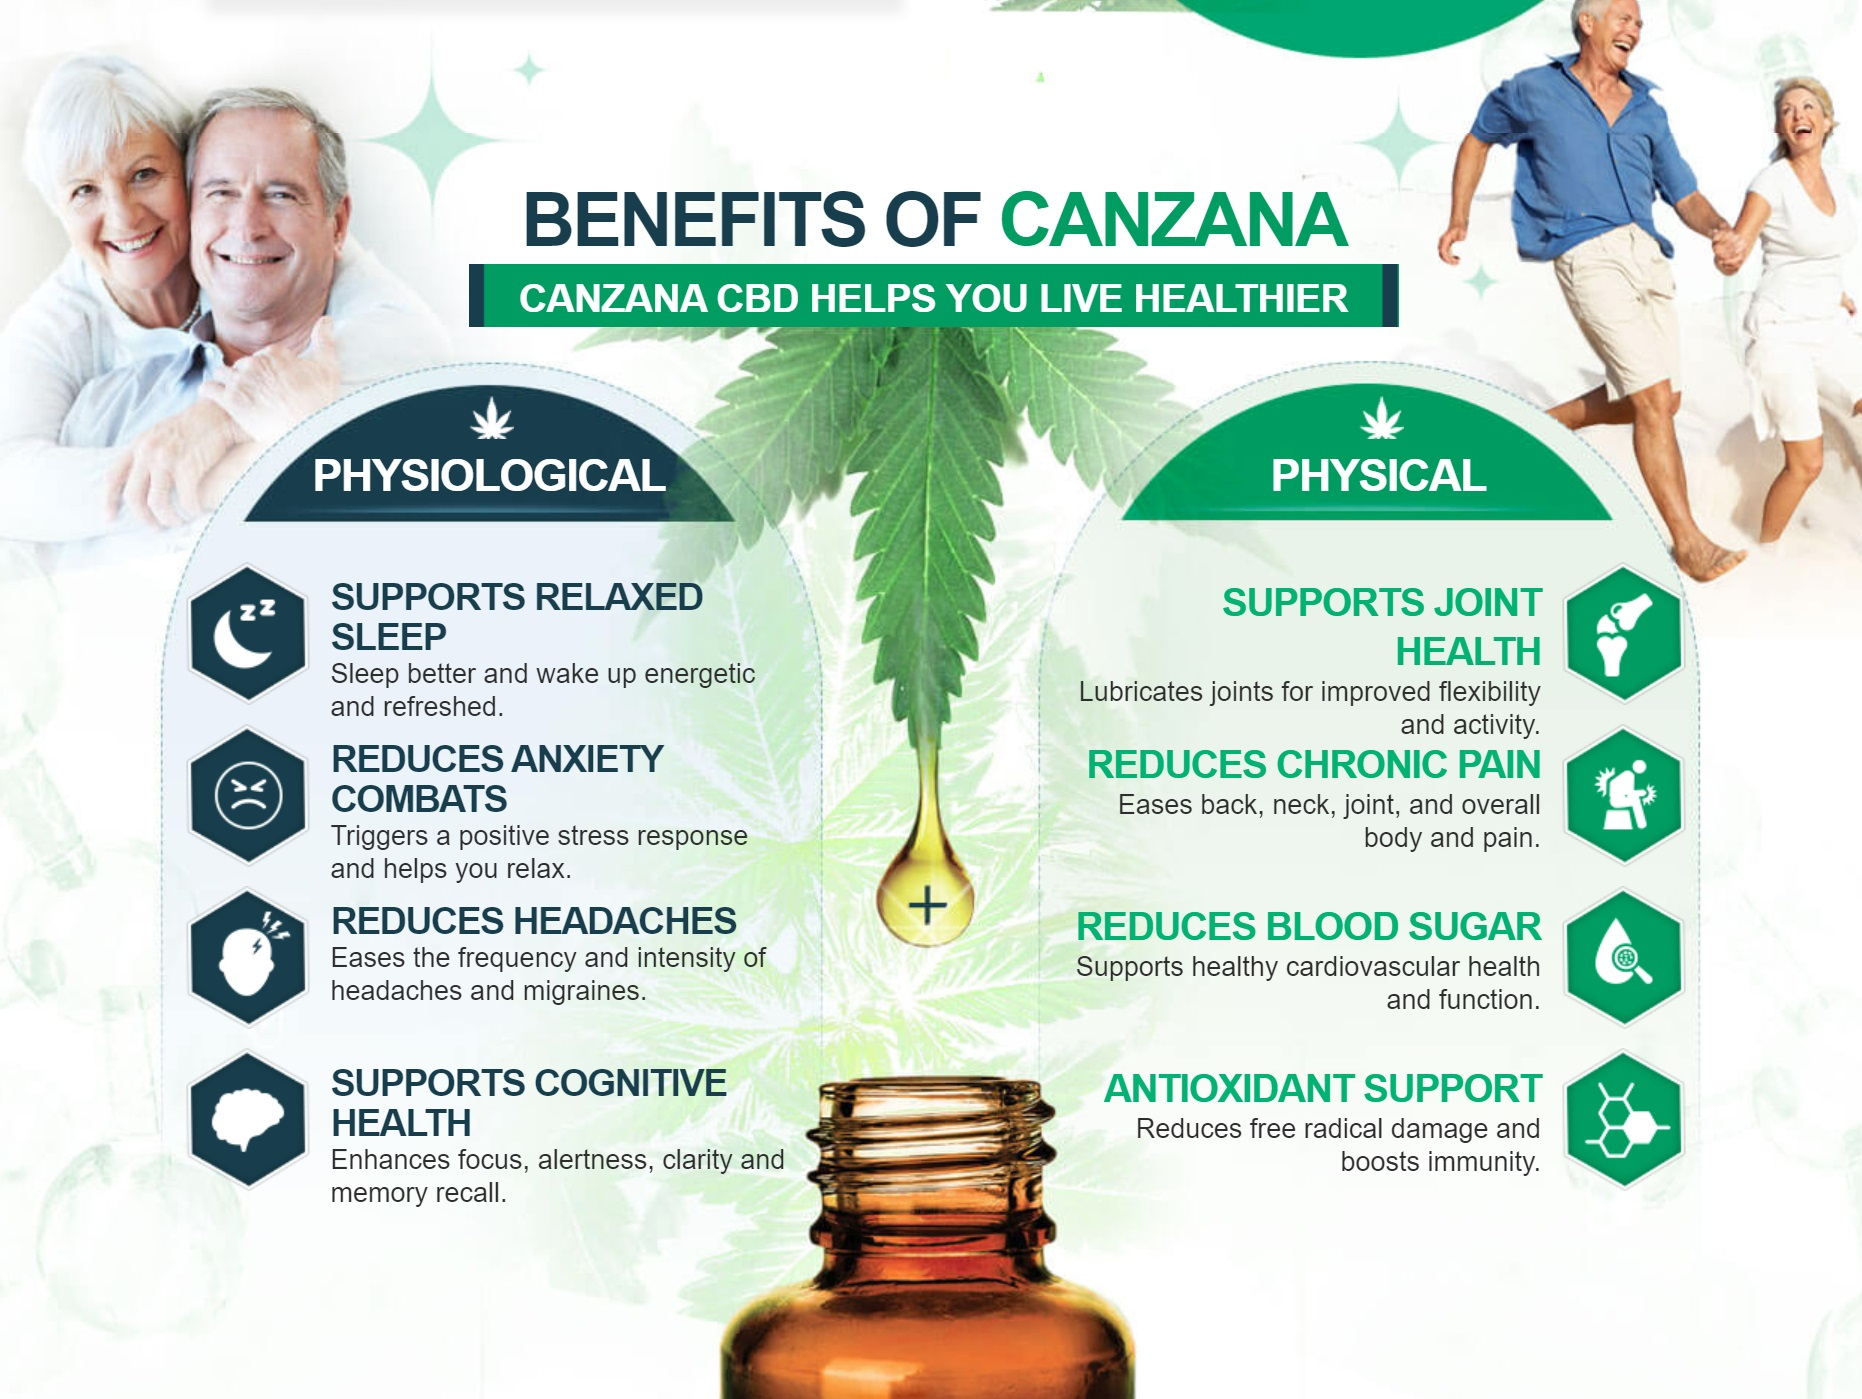 Canzana CBD Oil Benefits